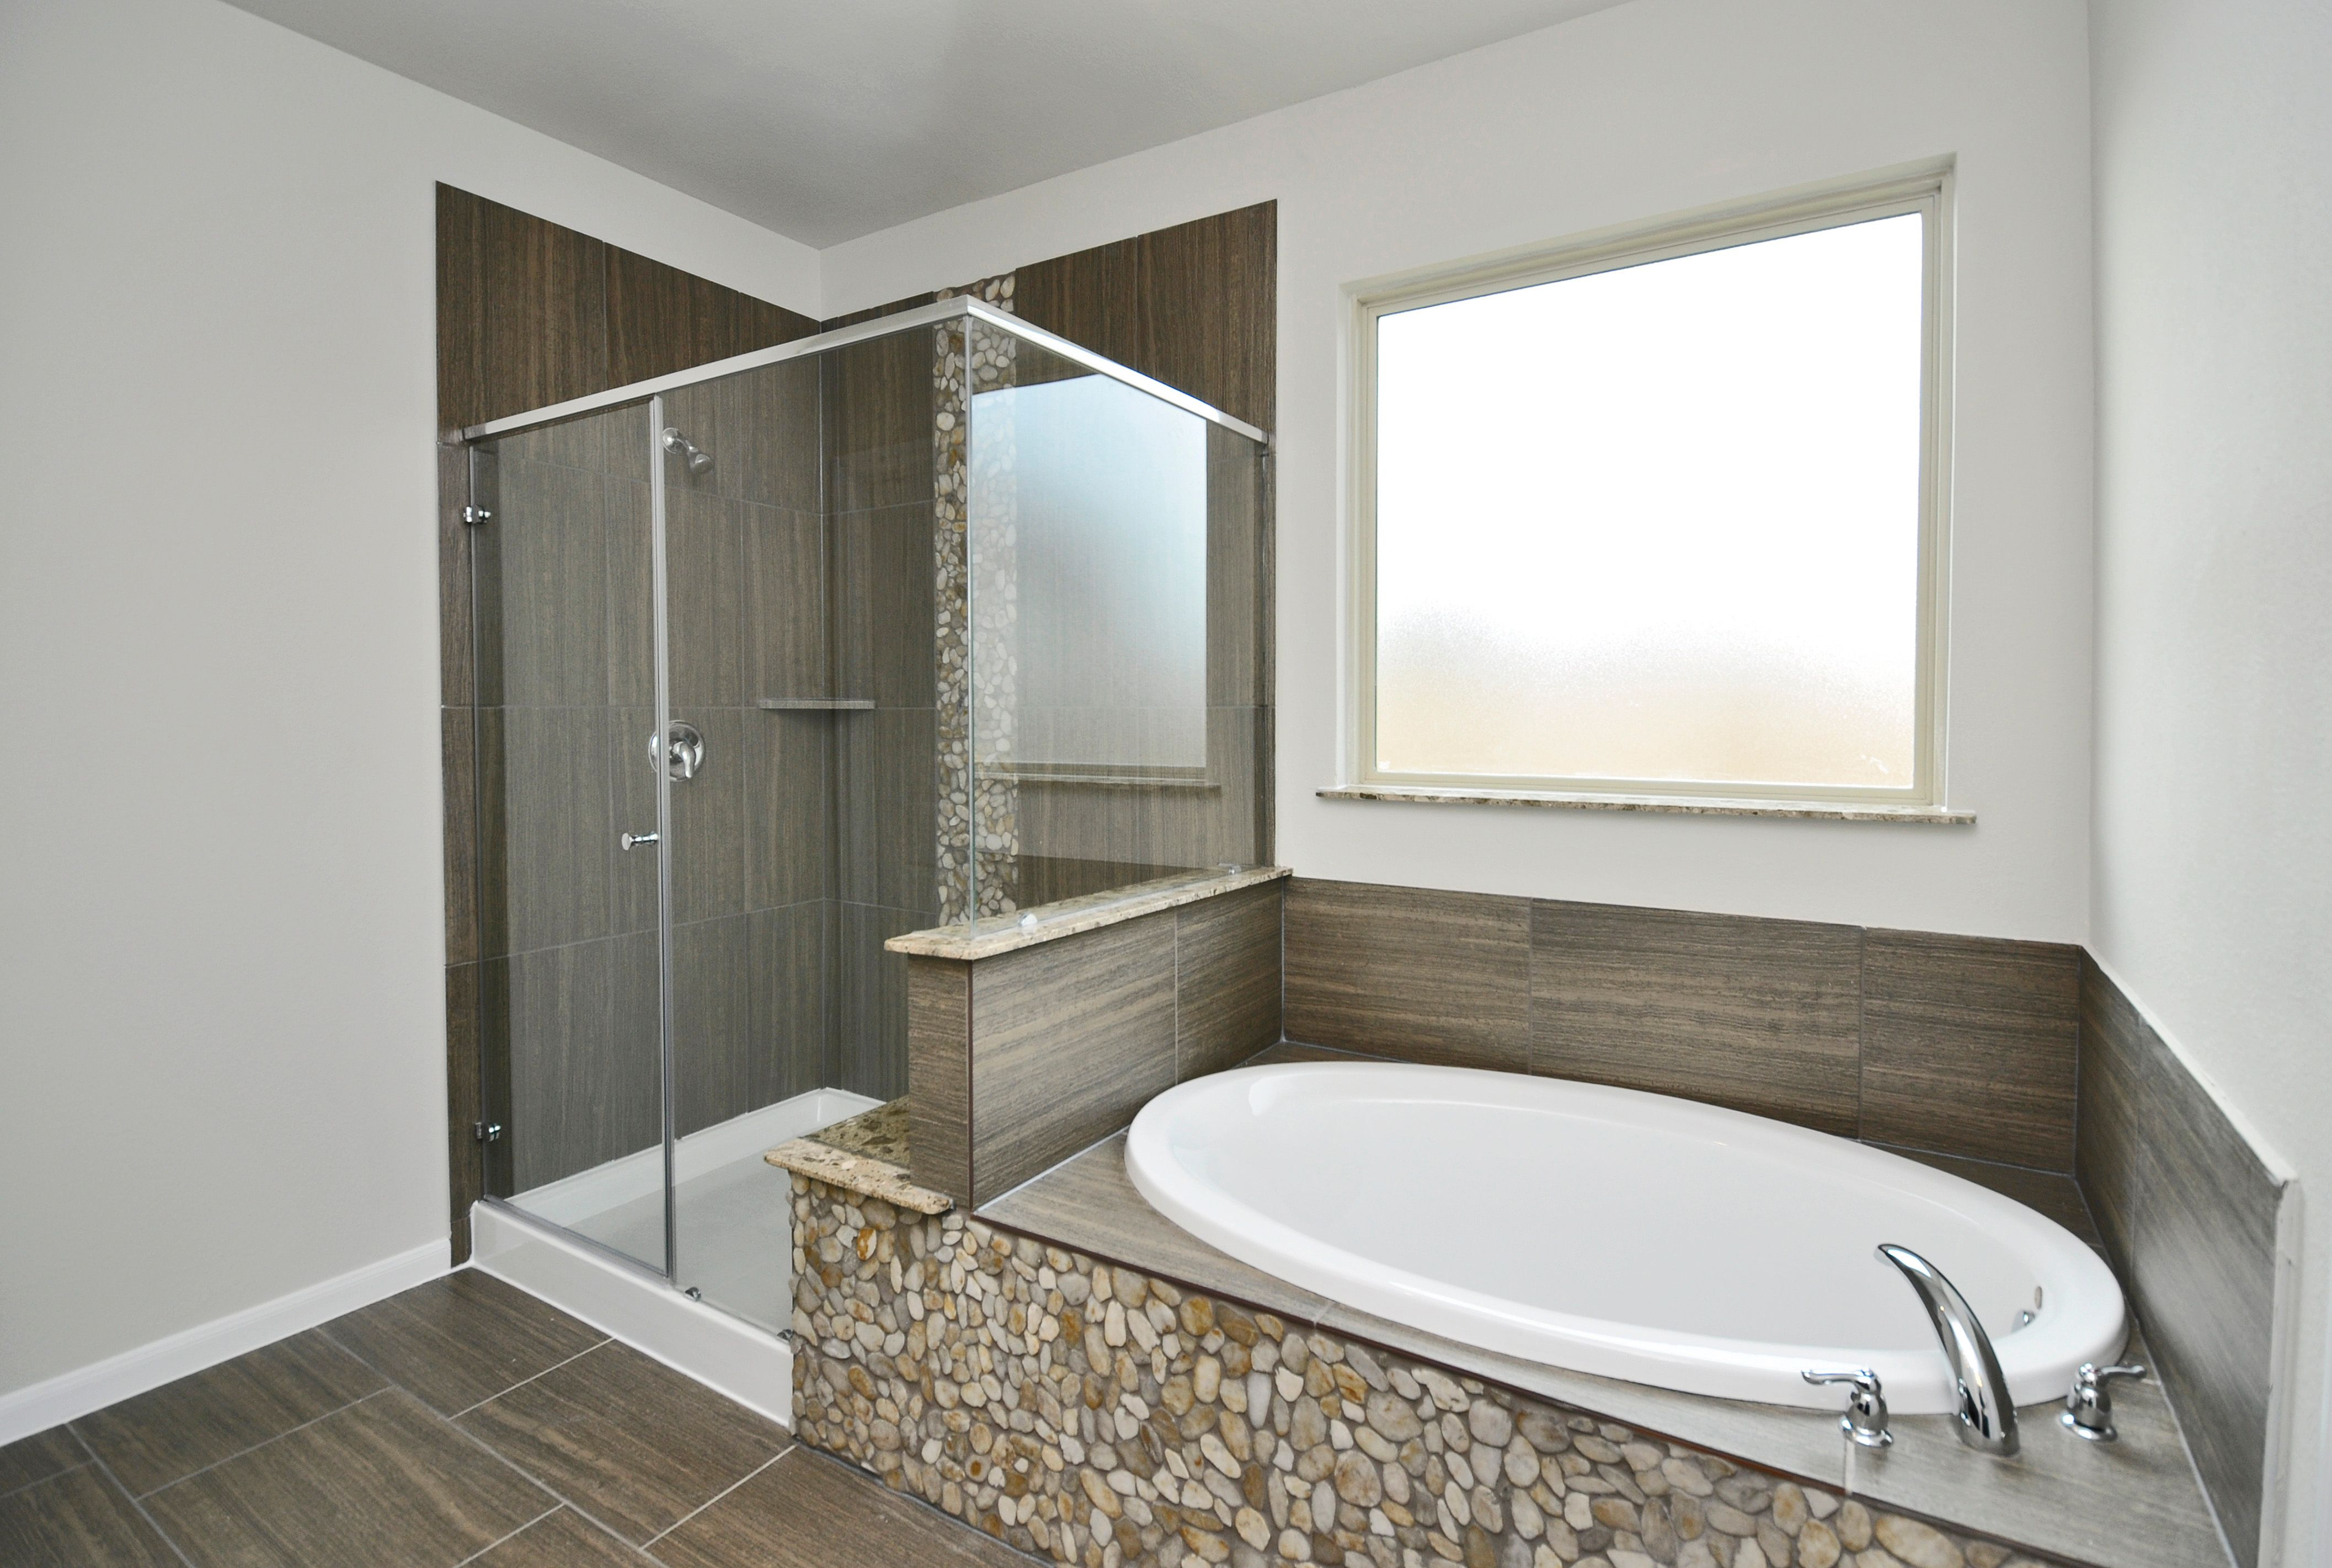 Bathroom featured in the Hudson By Empire Communities in Houston, TX